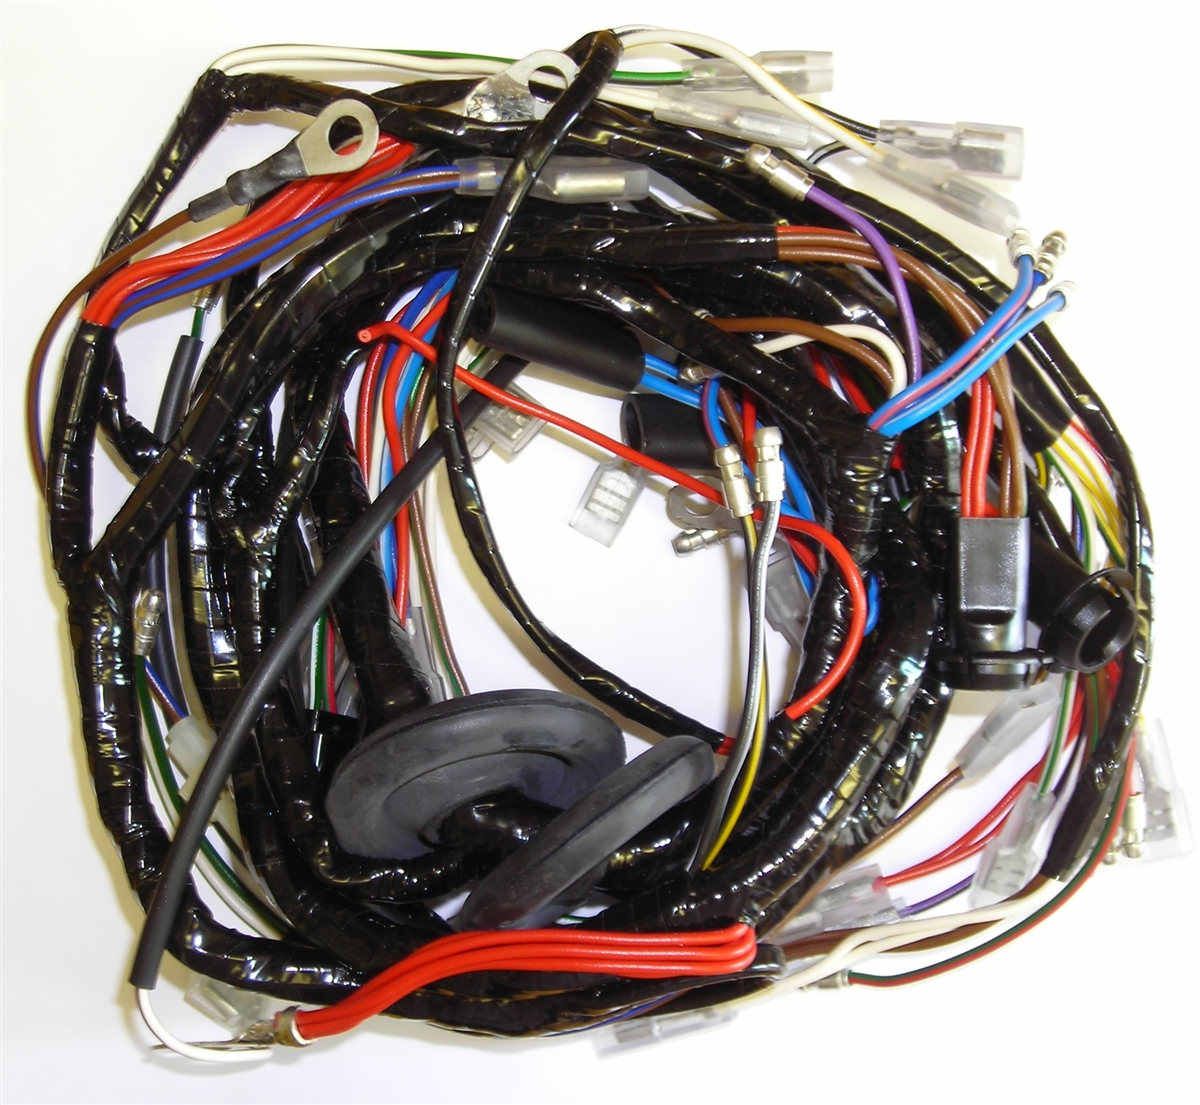 motorcycle wiring harness 25 wiring diagram images motorcycle wiring harness kit motorcycle wiring harness controller